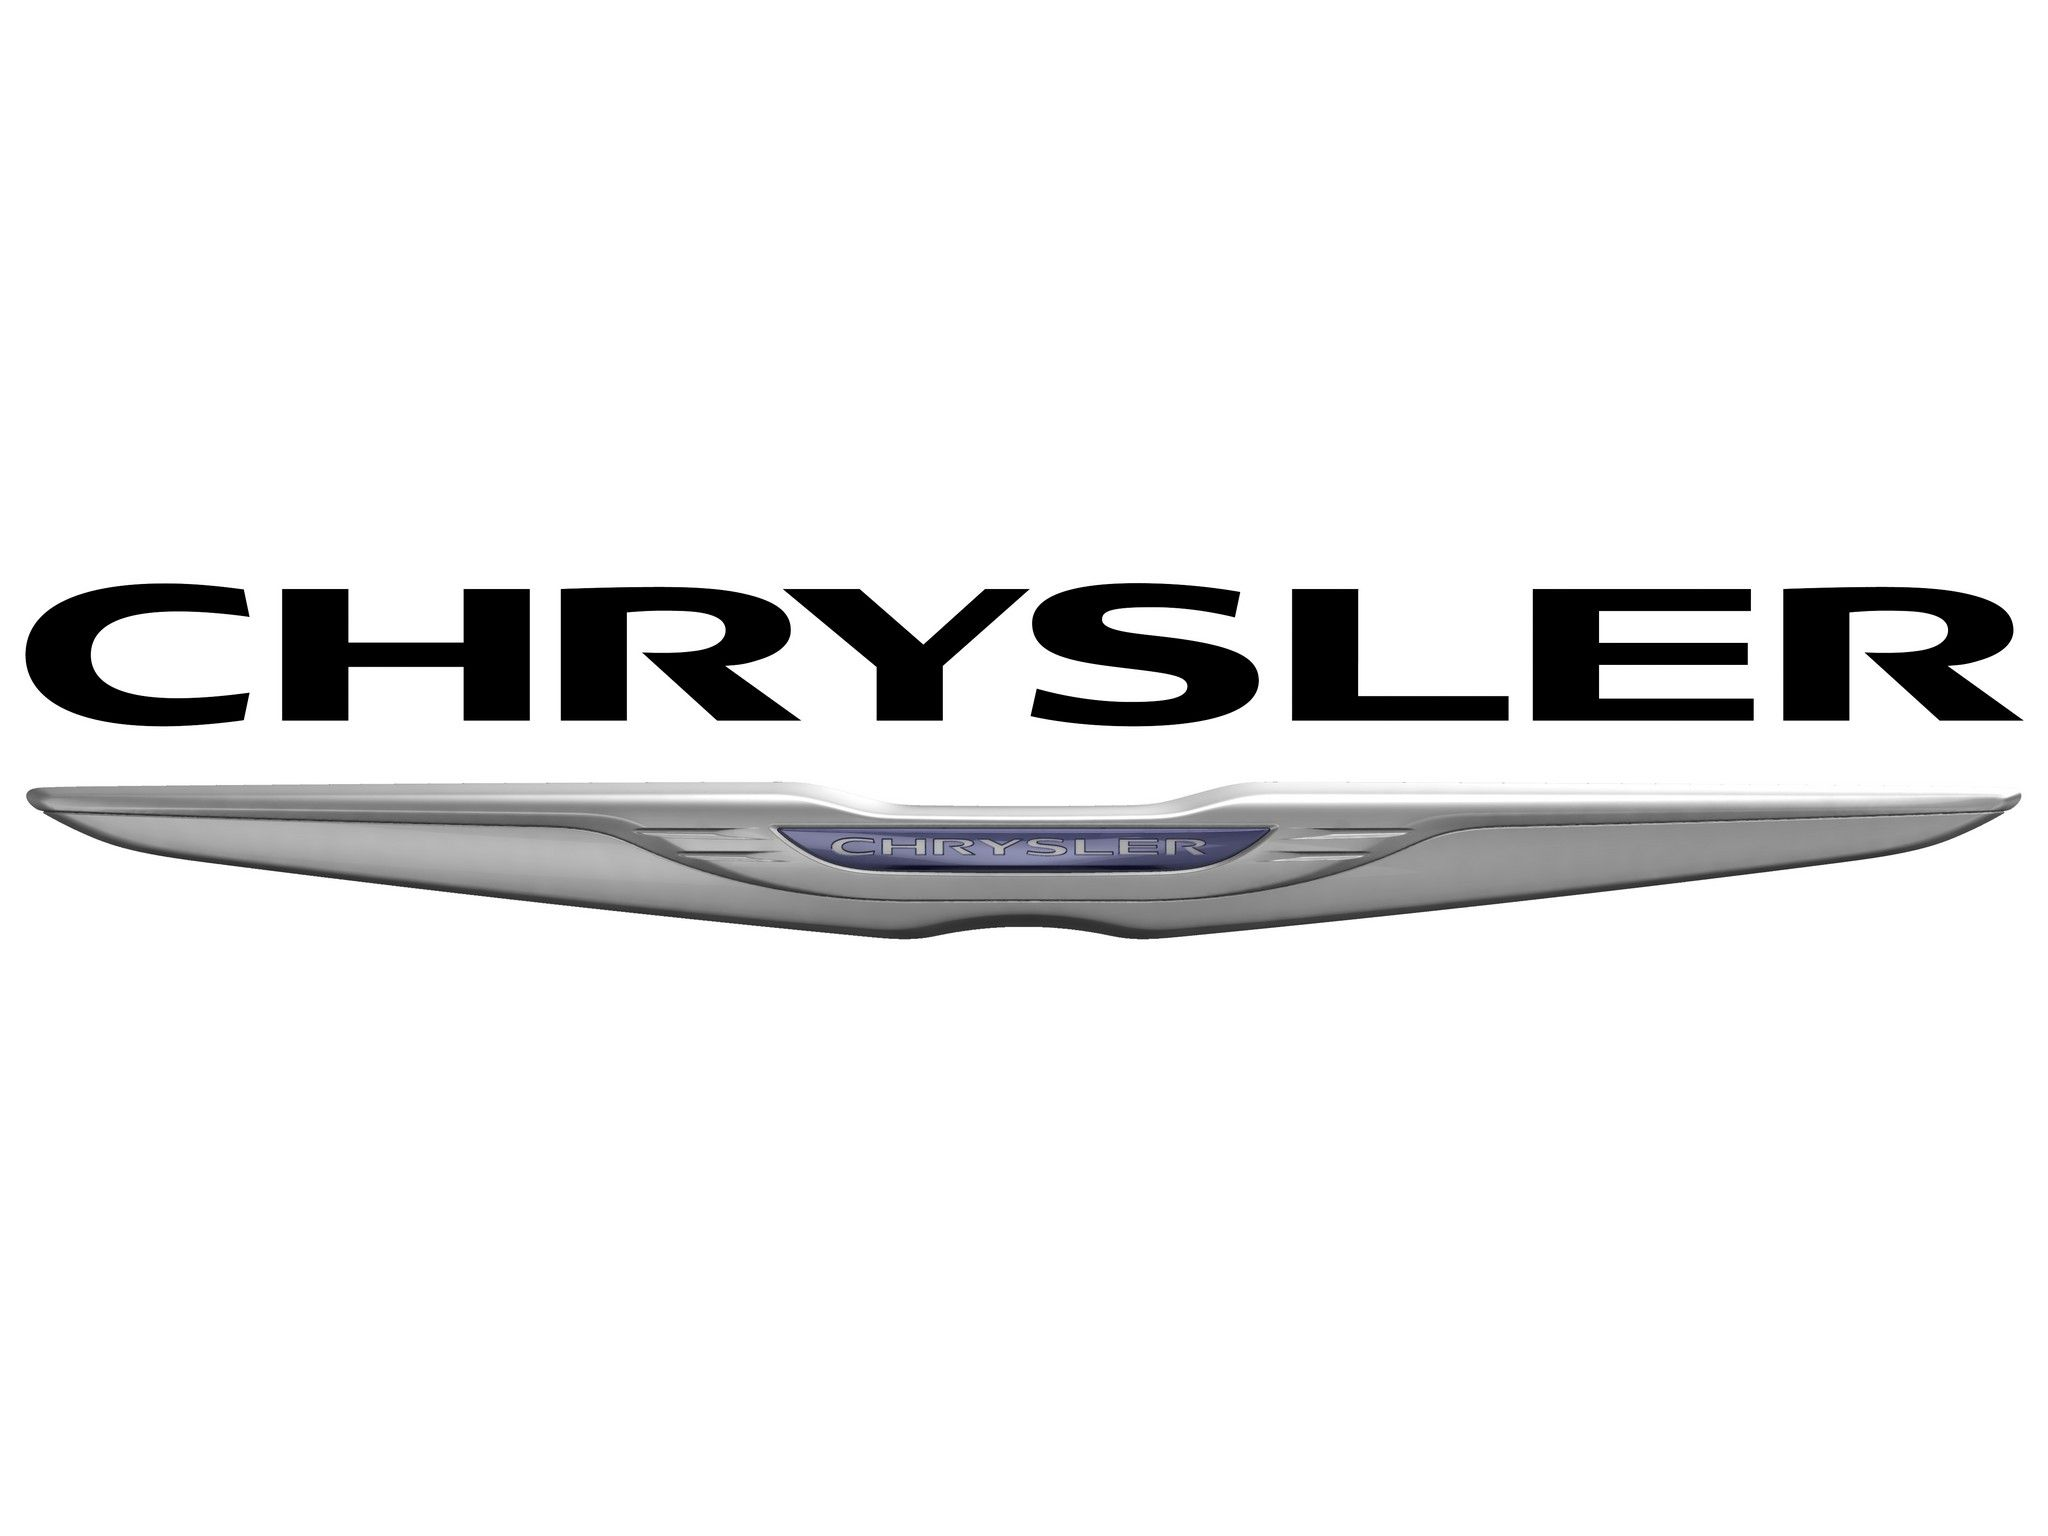 Chrysler Logo - Chrysler Logo, Chrysler Car Symbol Meaning and History | Car Brand ...